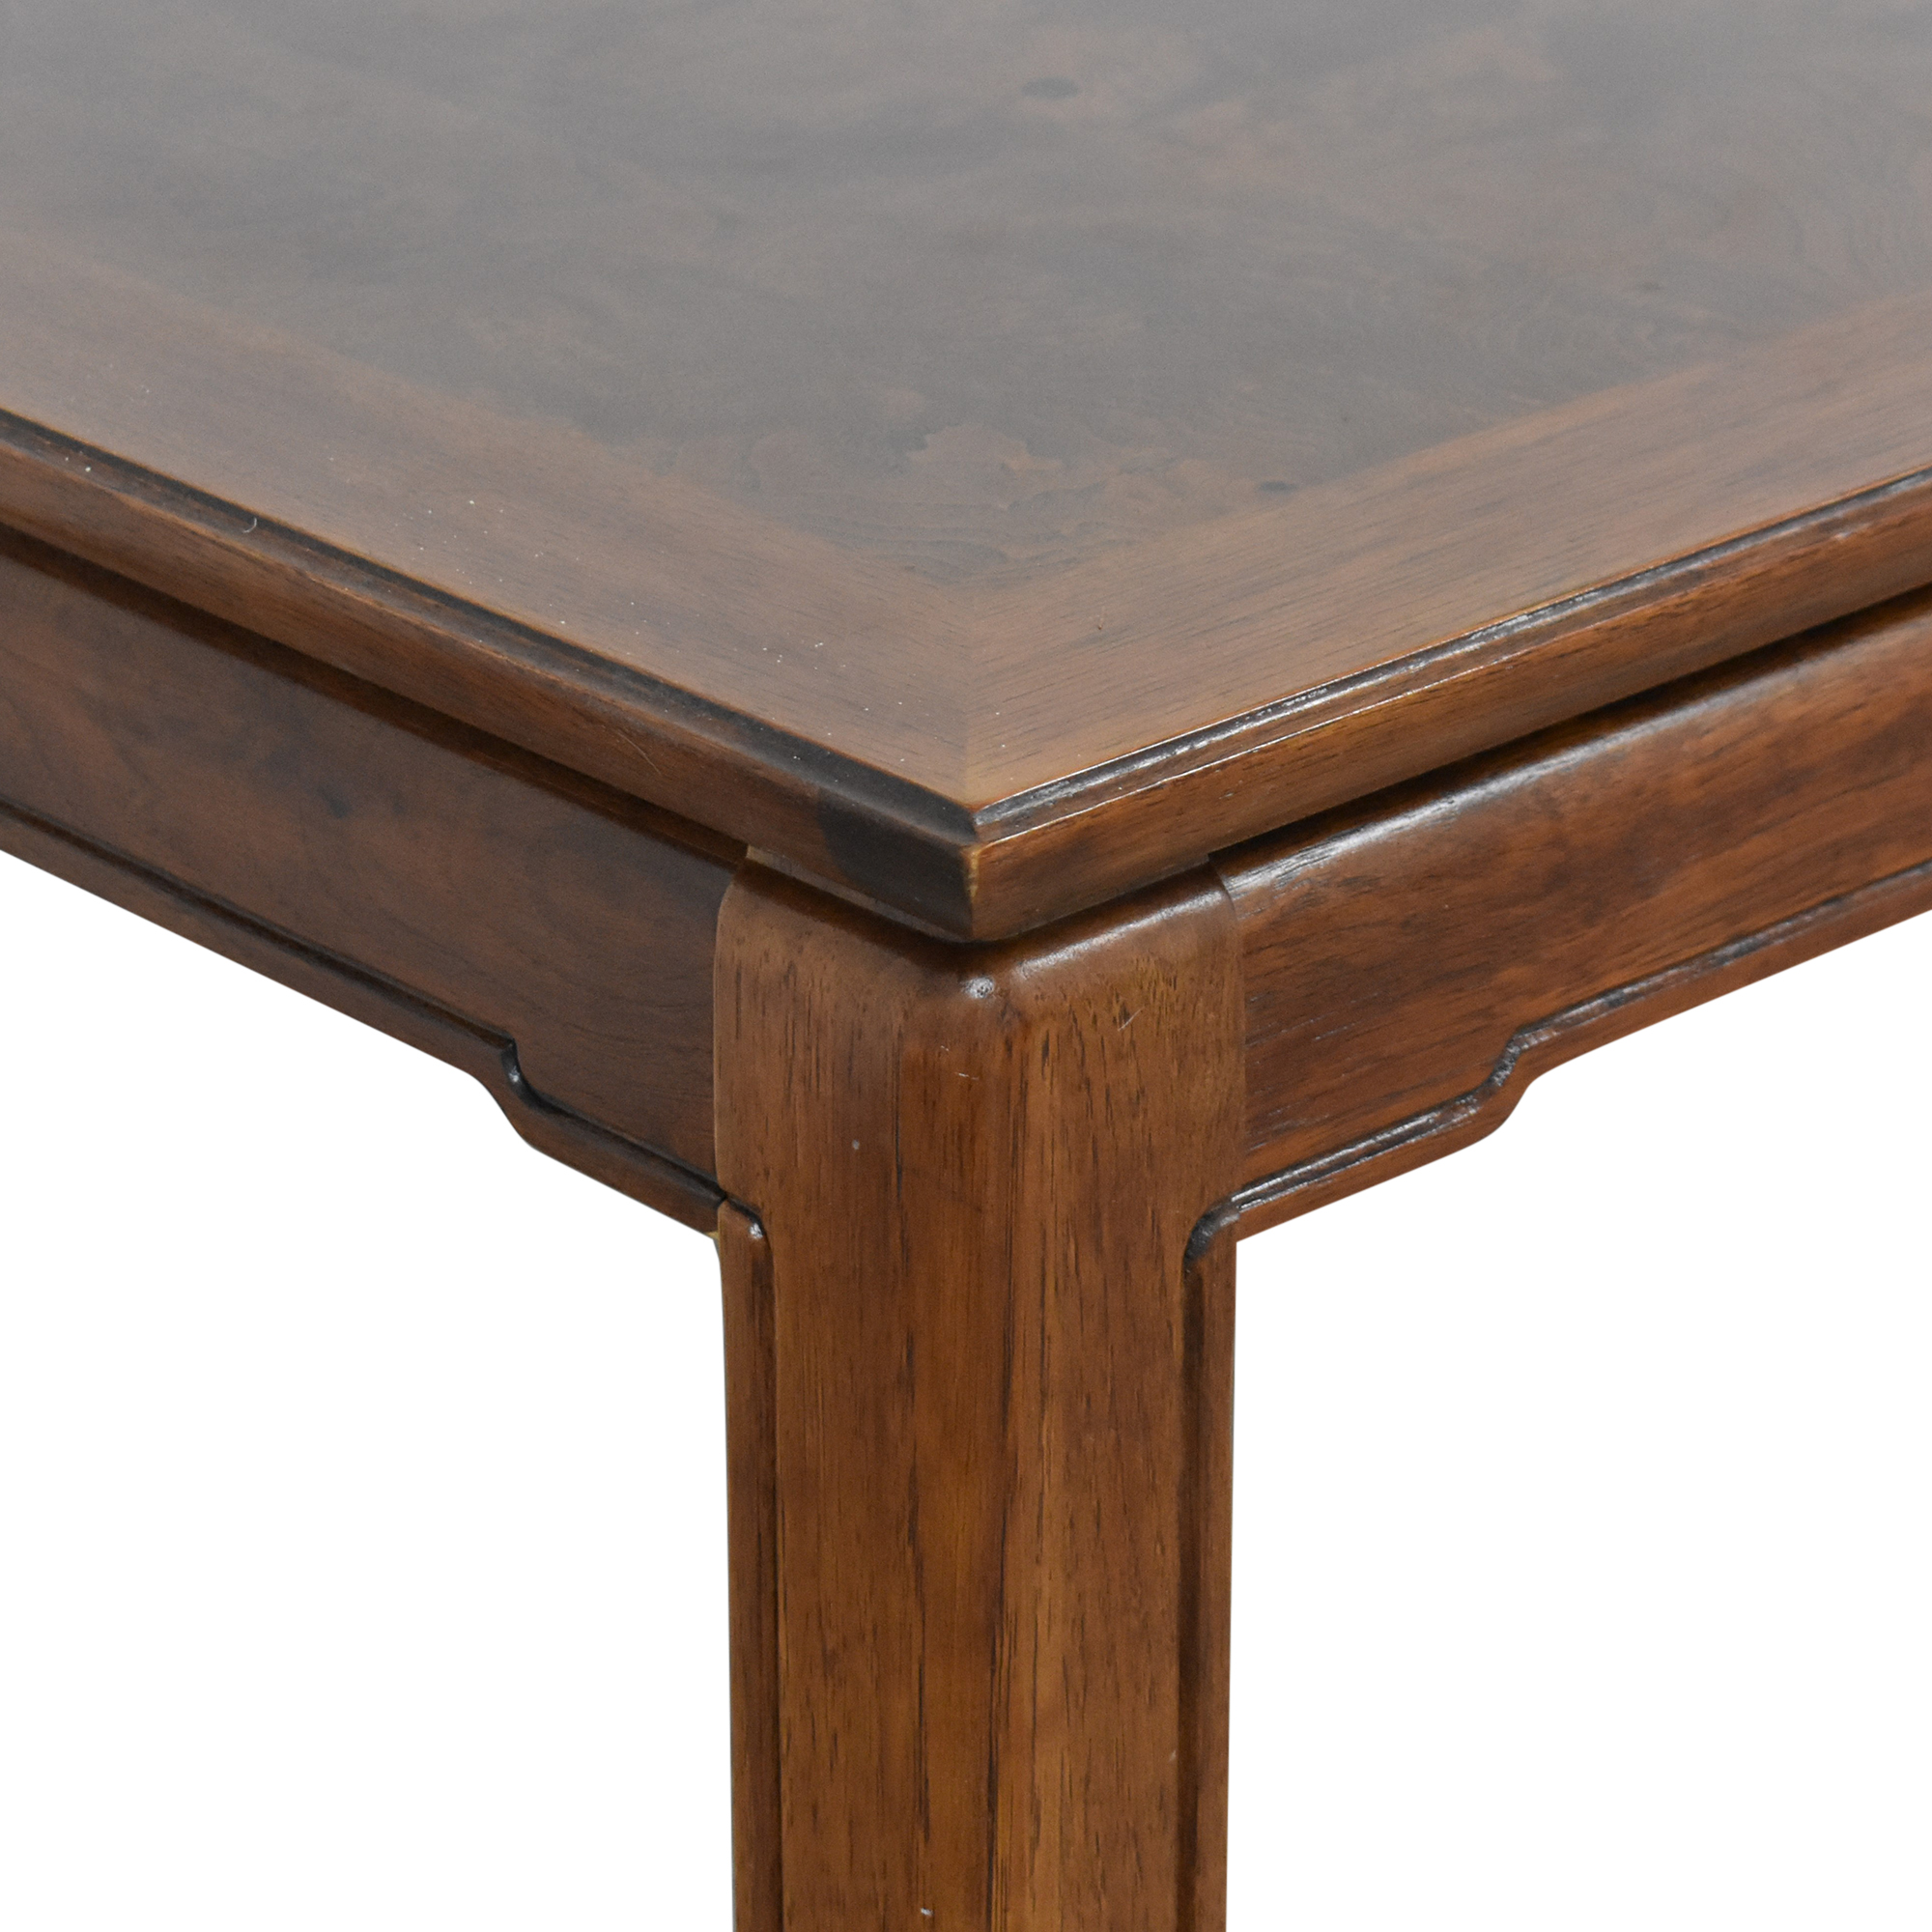 Thomasville Thomasville Mystique Extendable Dining Table brown